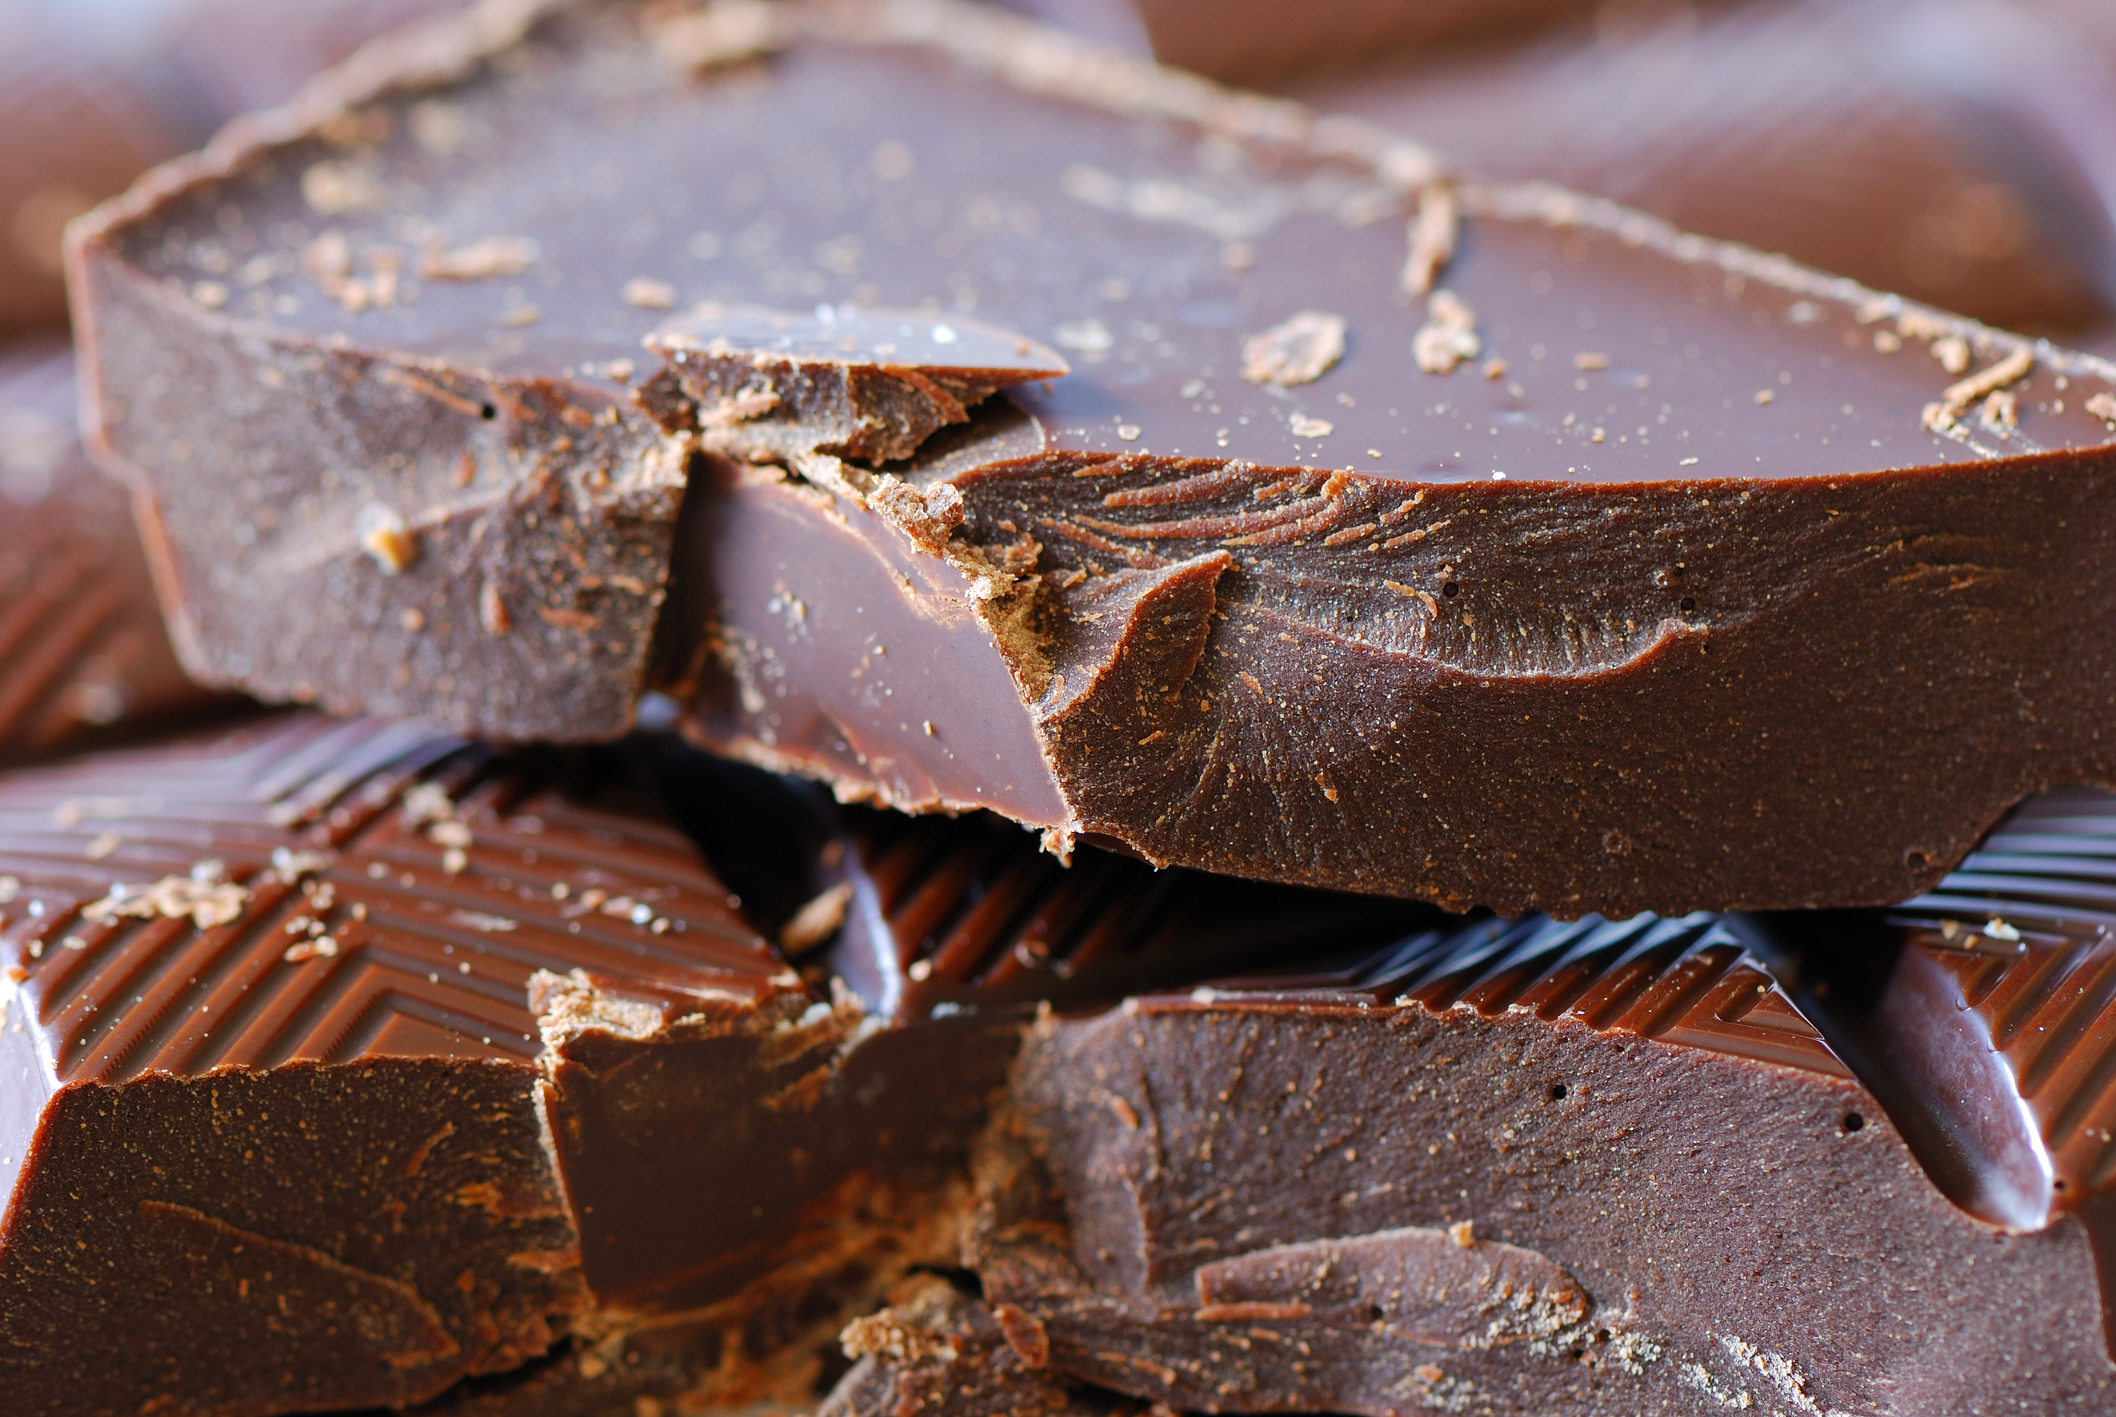 Dark chocolate is just one of several secret ingredients in one user's beef chilli. Photo credit: Andrew Hounslea / Getty Images